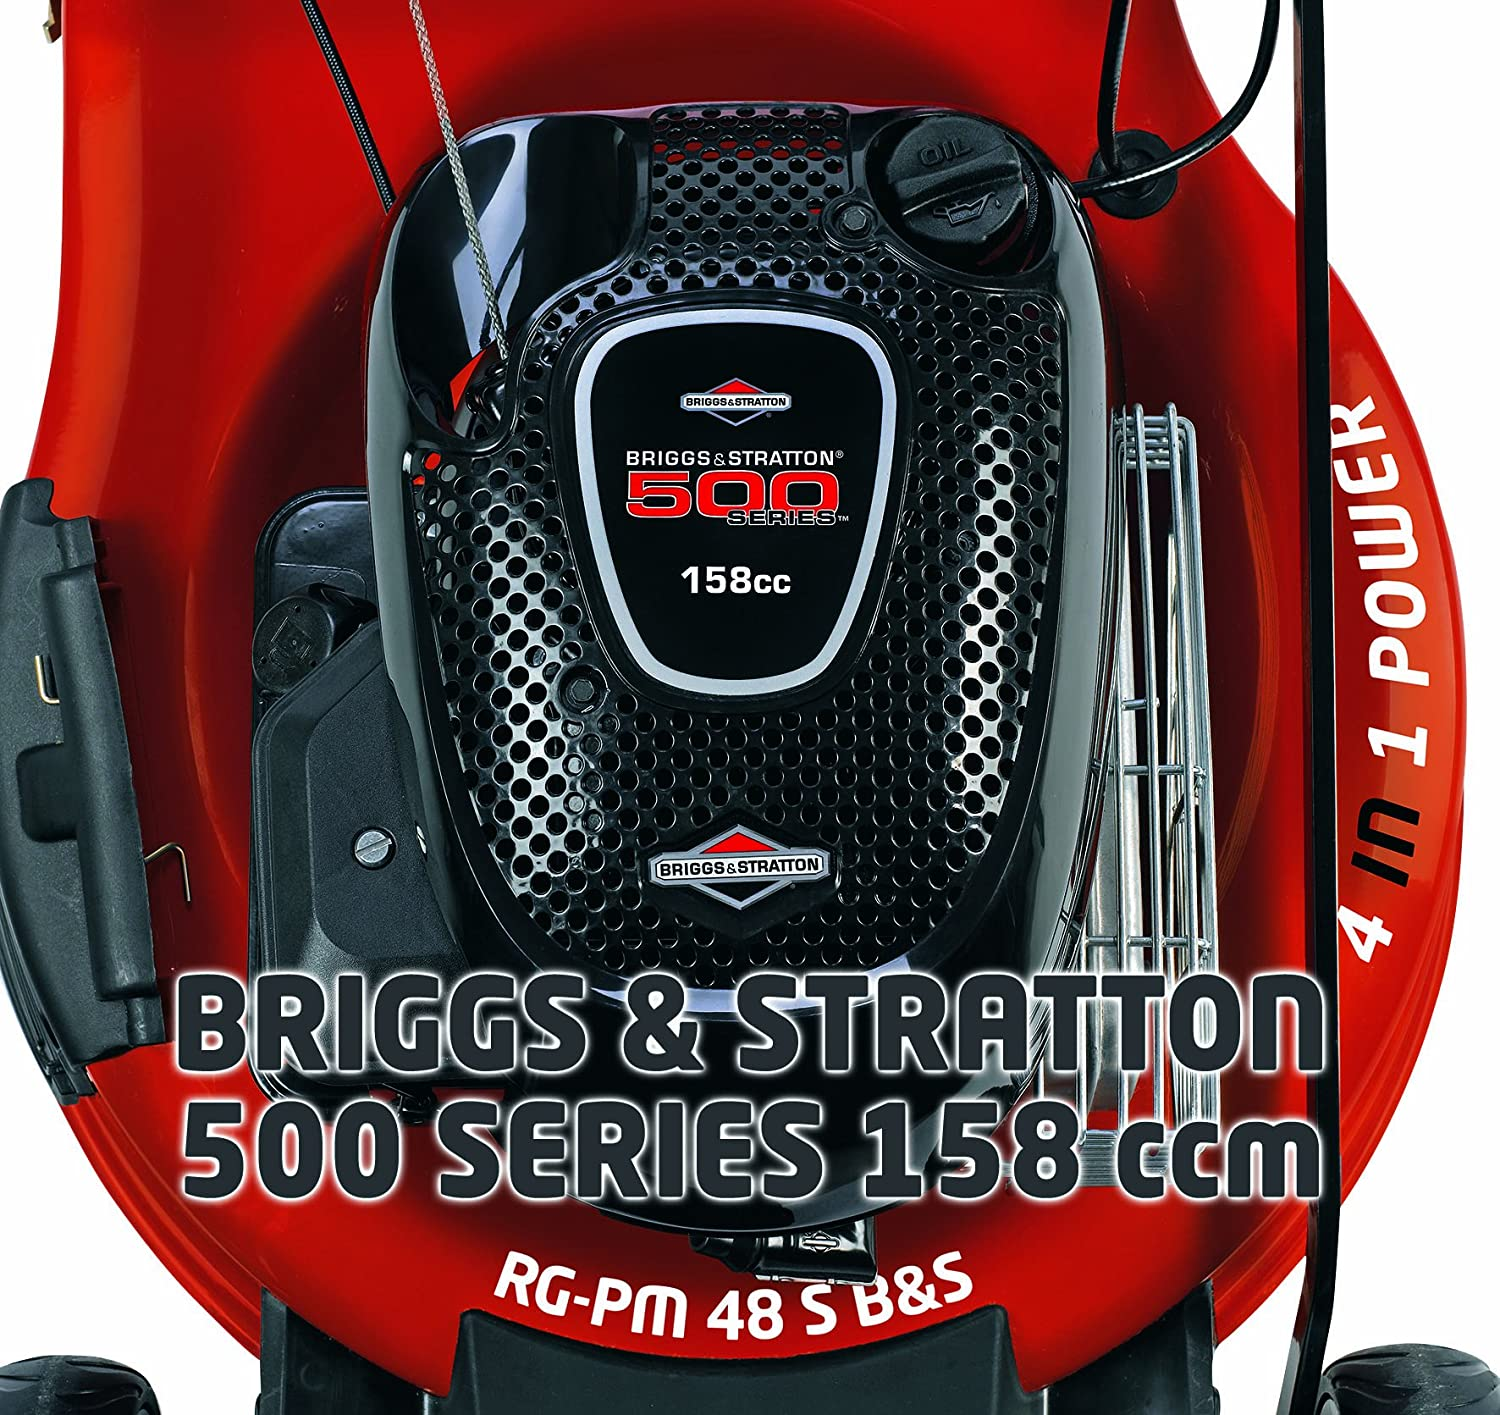 Einhell RG-PM 48 S B&S - Cortacésped (Manual lawnmower, 48 cm, 60 ...